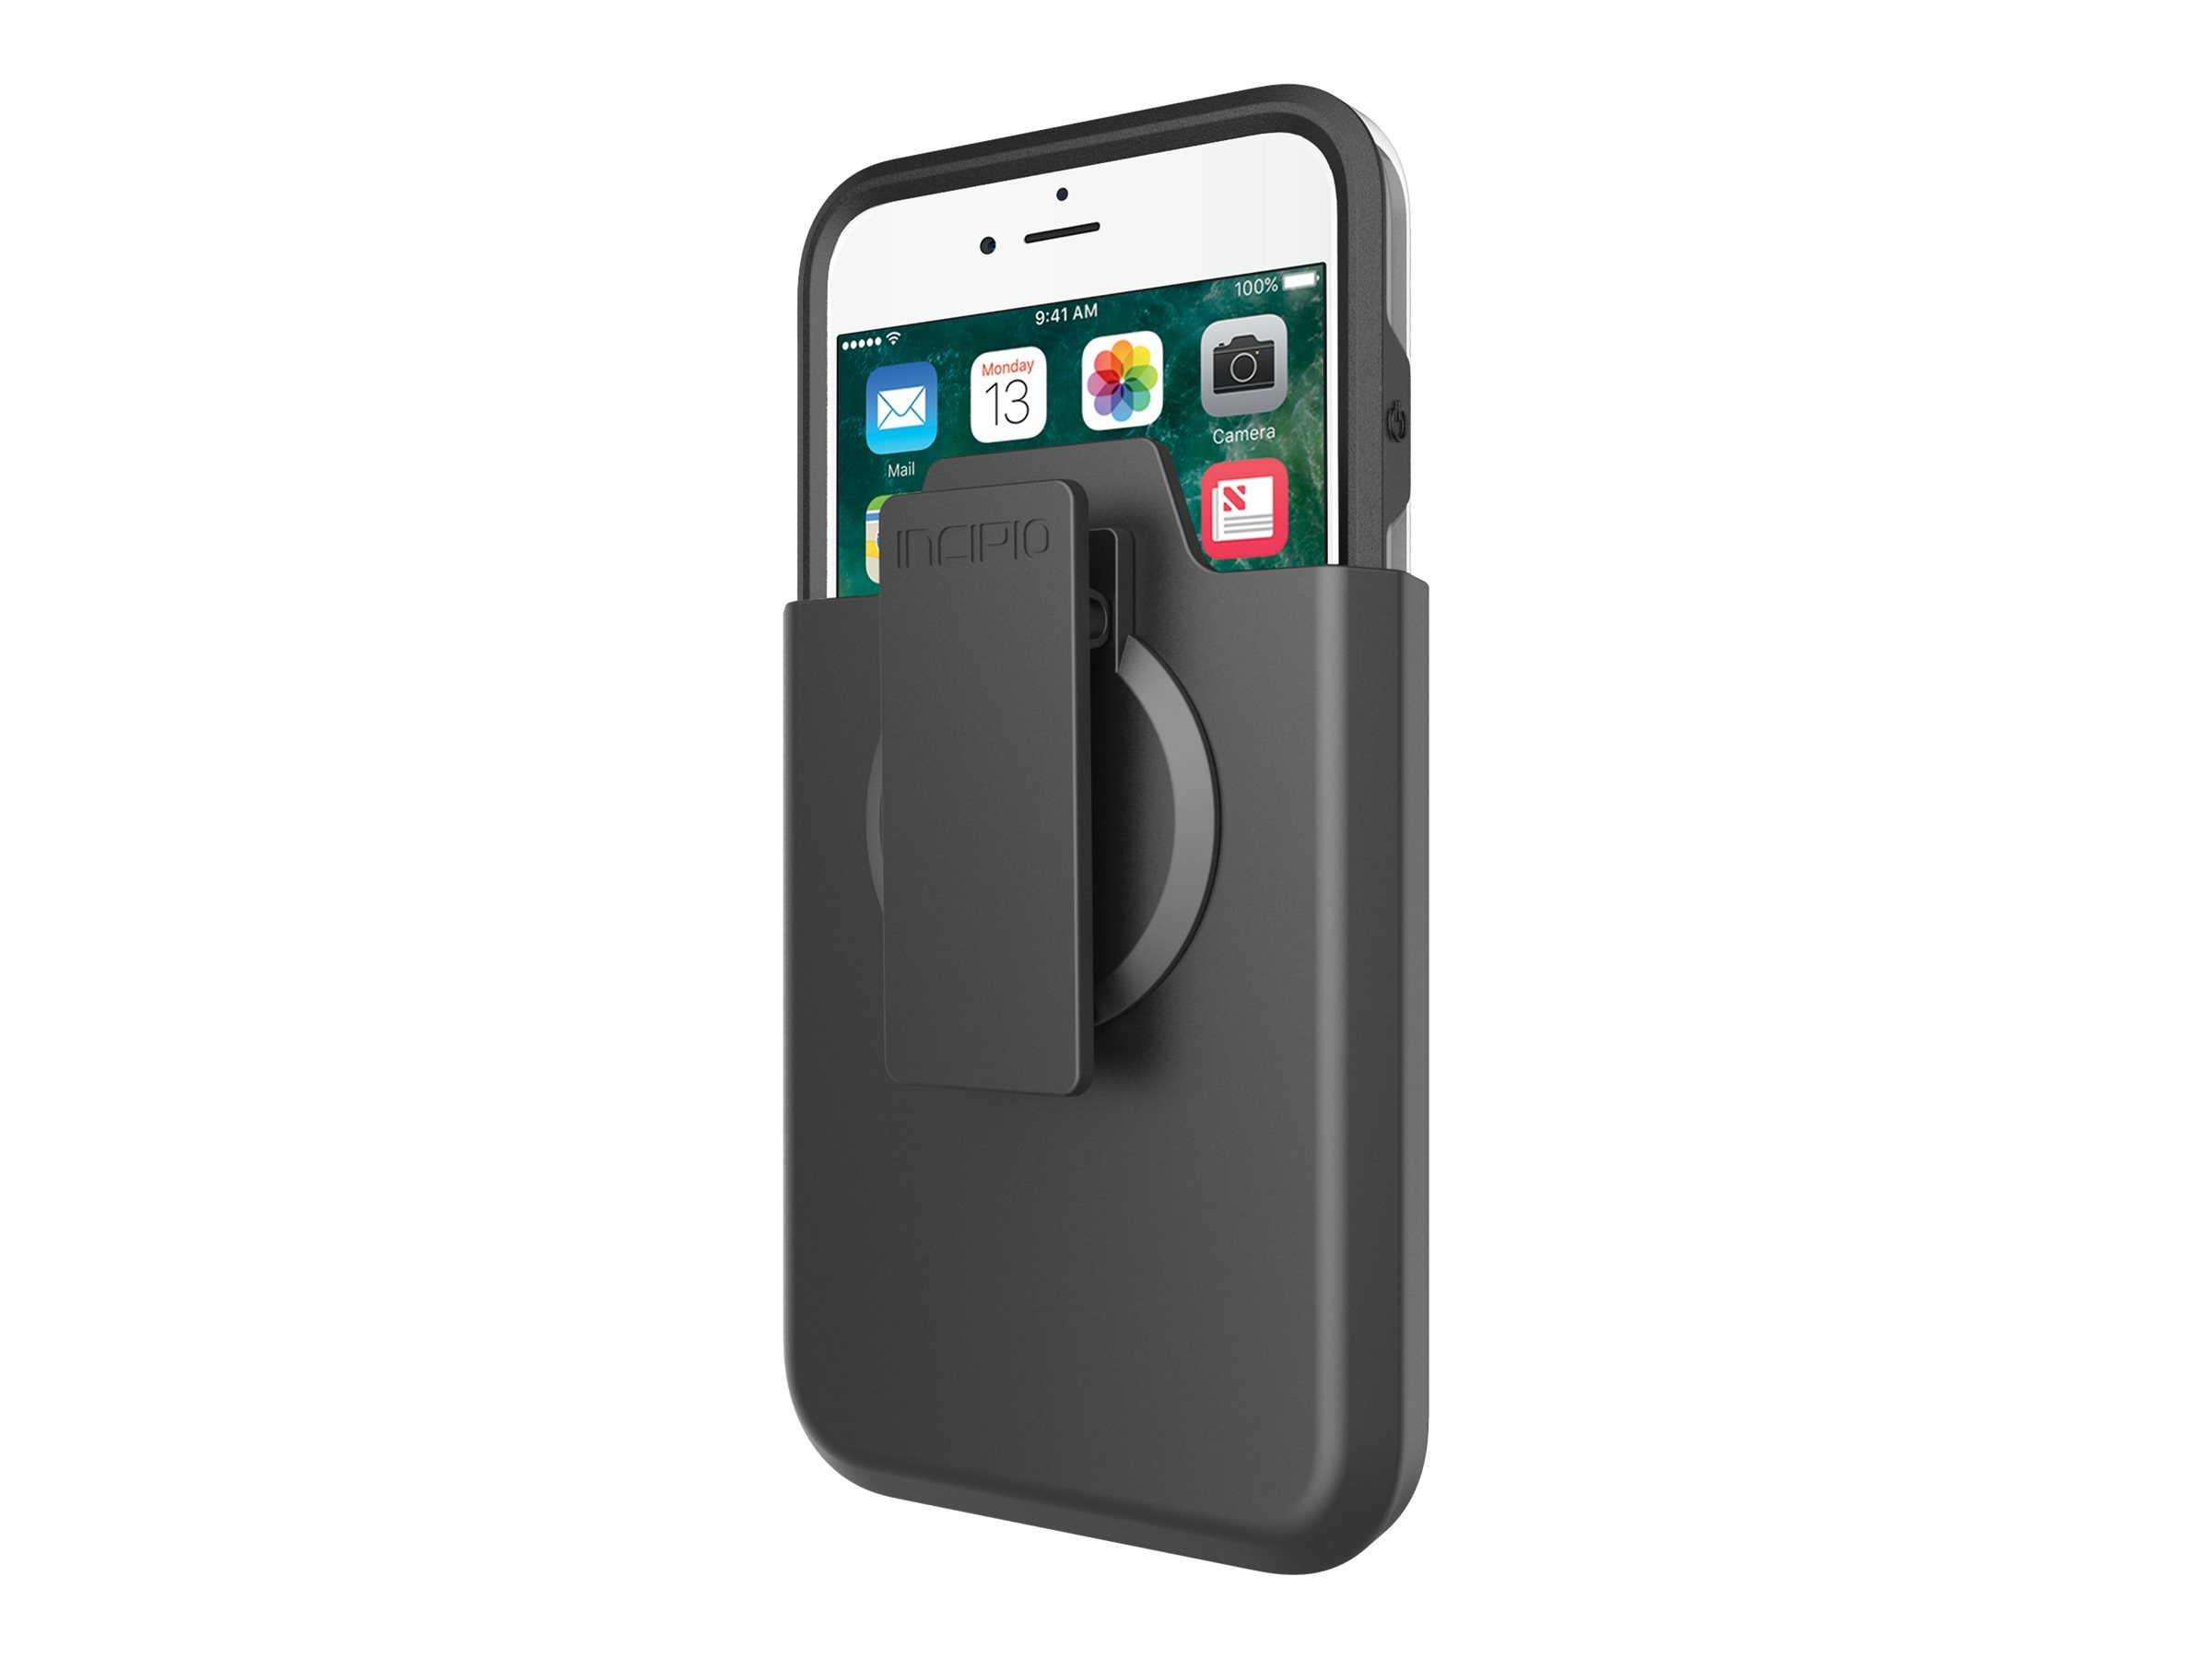 Incipio Performance Series Ultra with Holster for iPhone 7 Plus, Black Gray